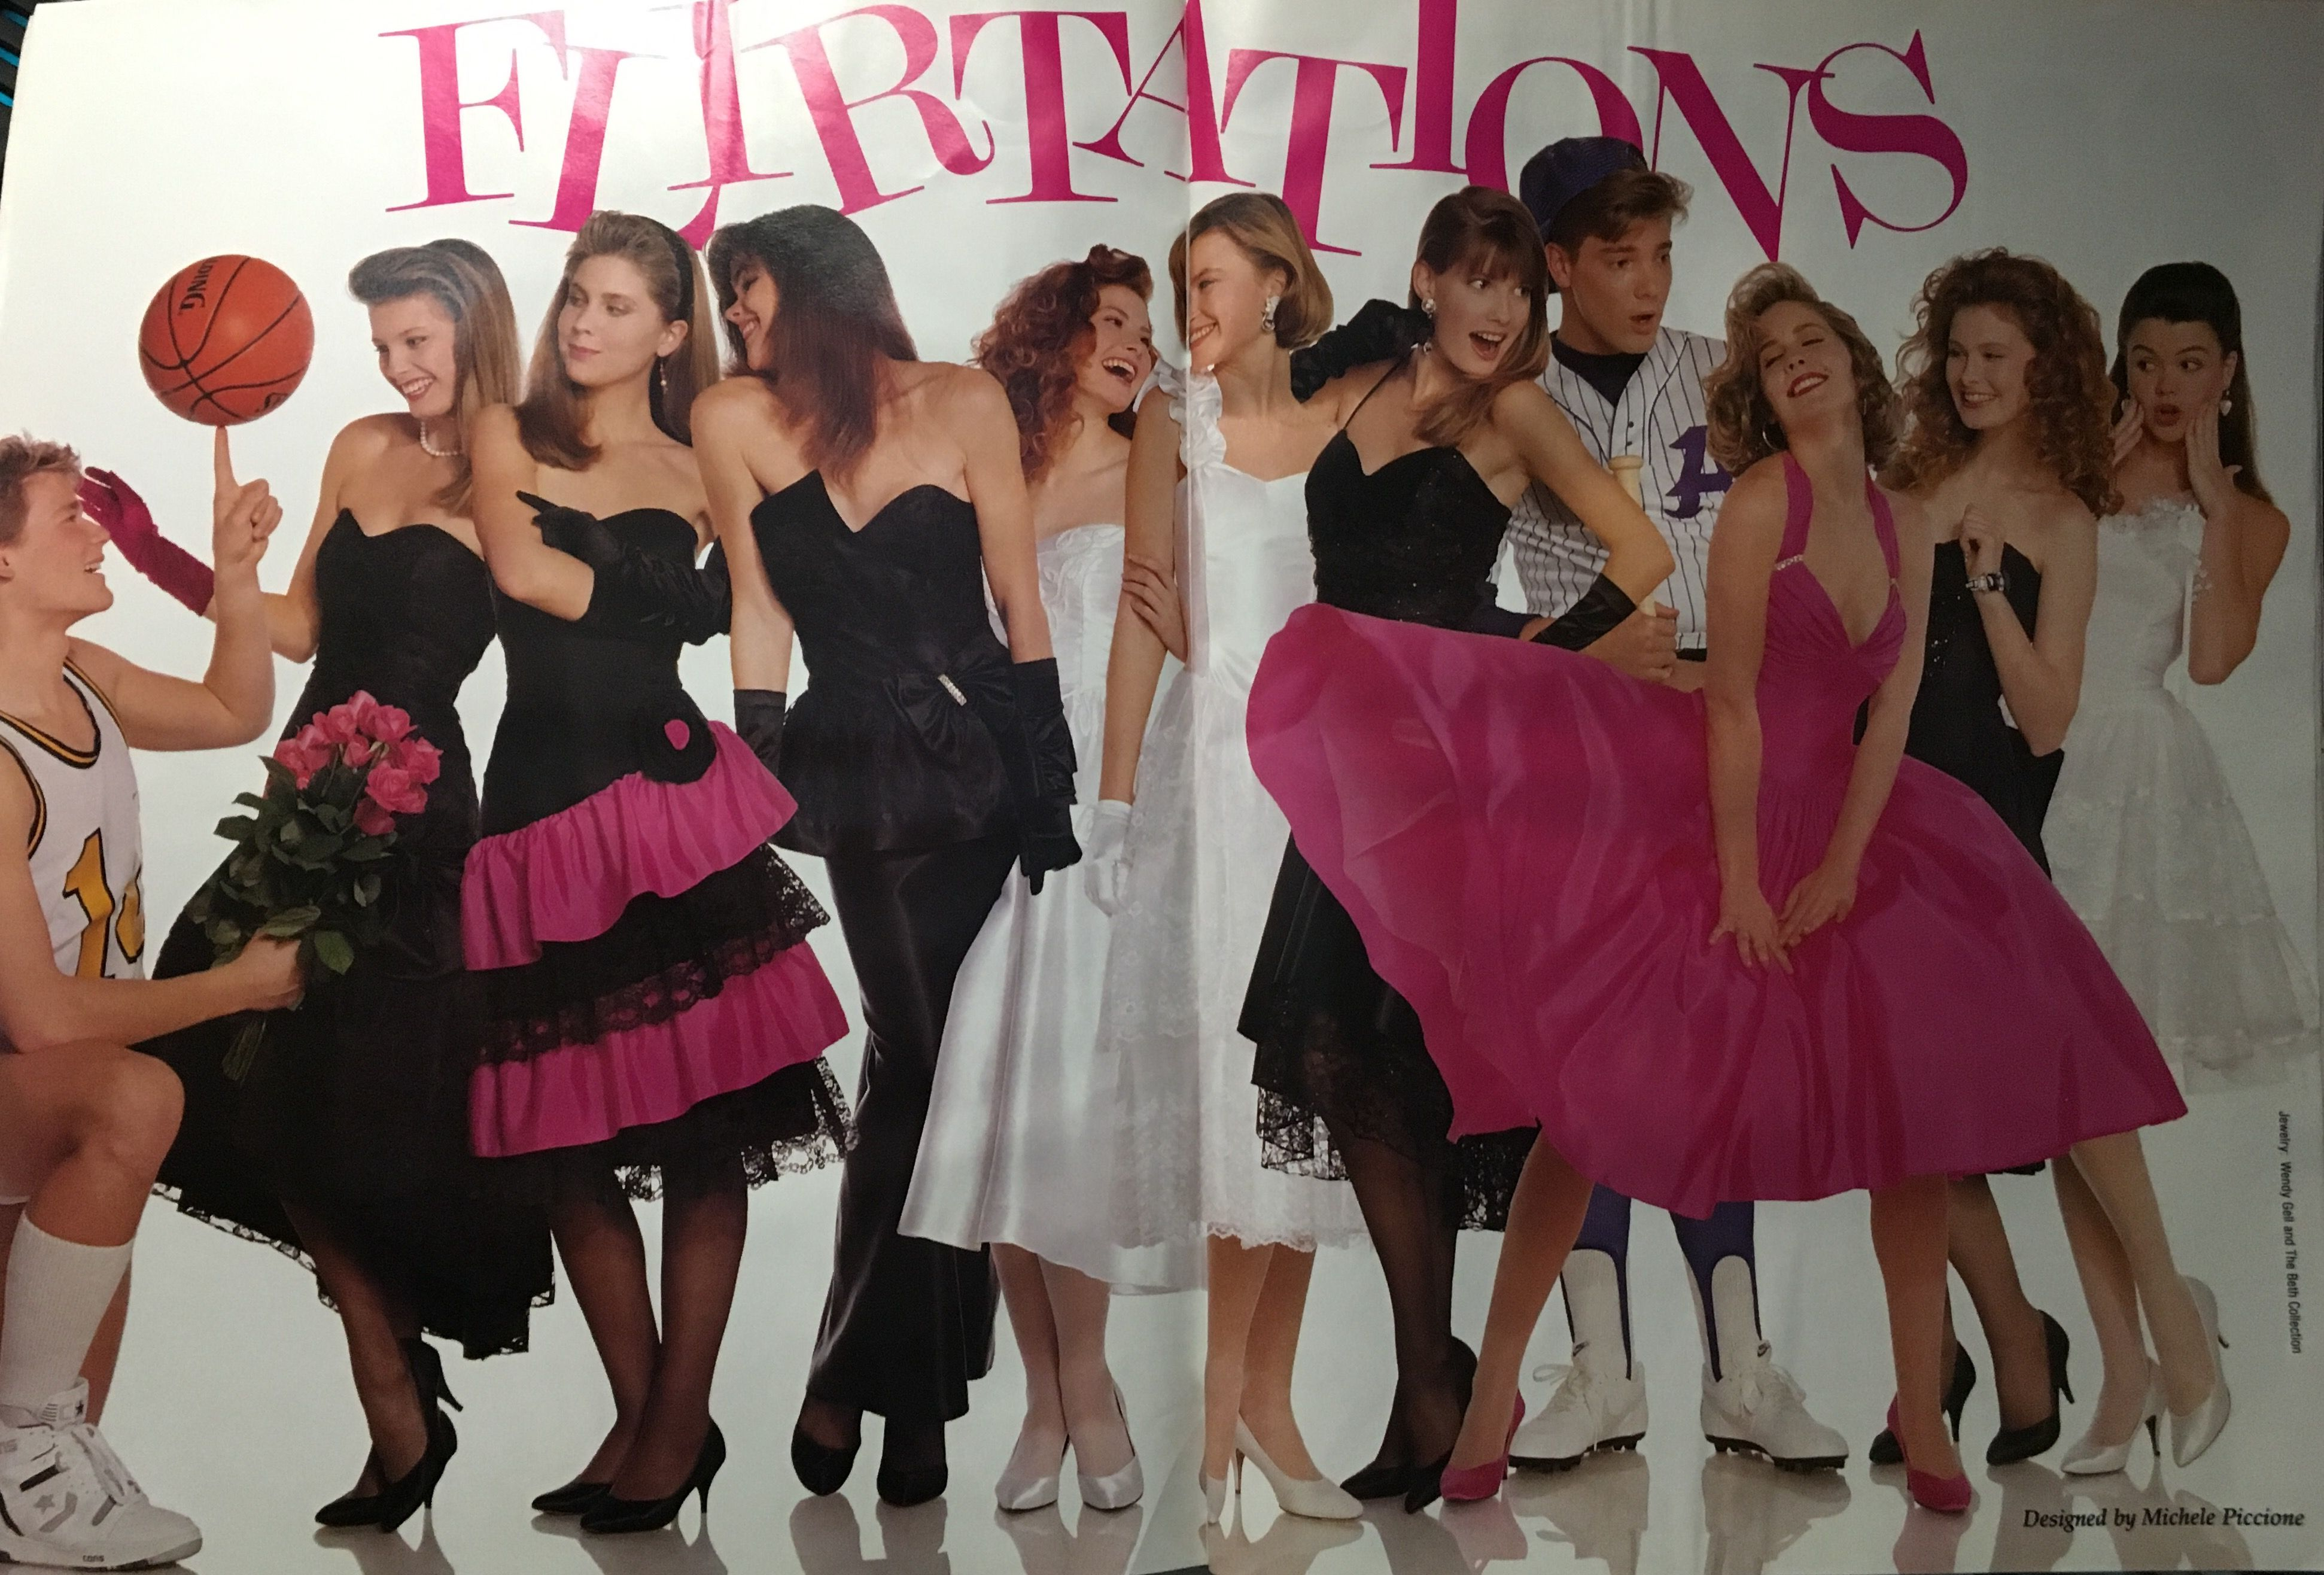 Flirtations by Alfred Angelo Seventeen magazine